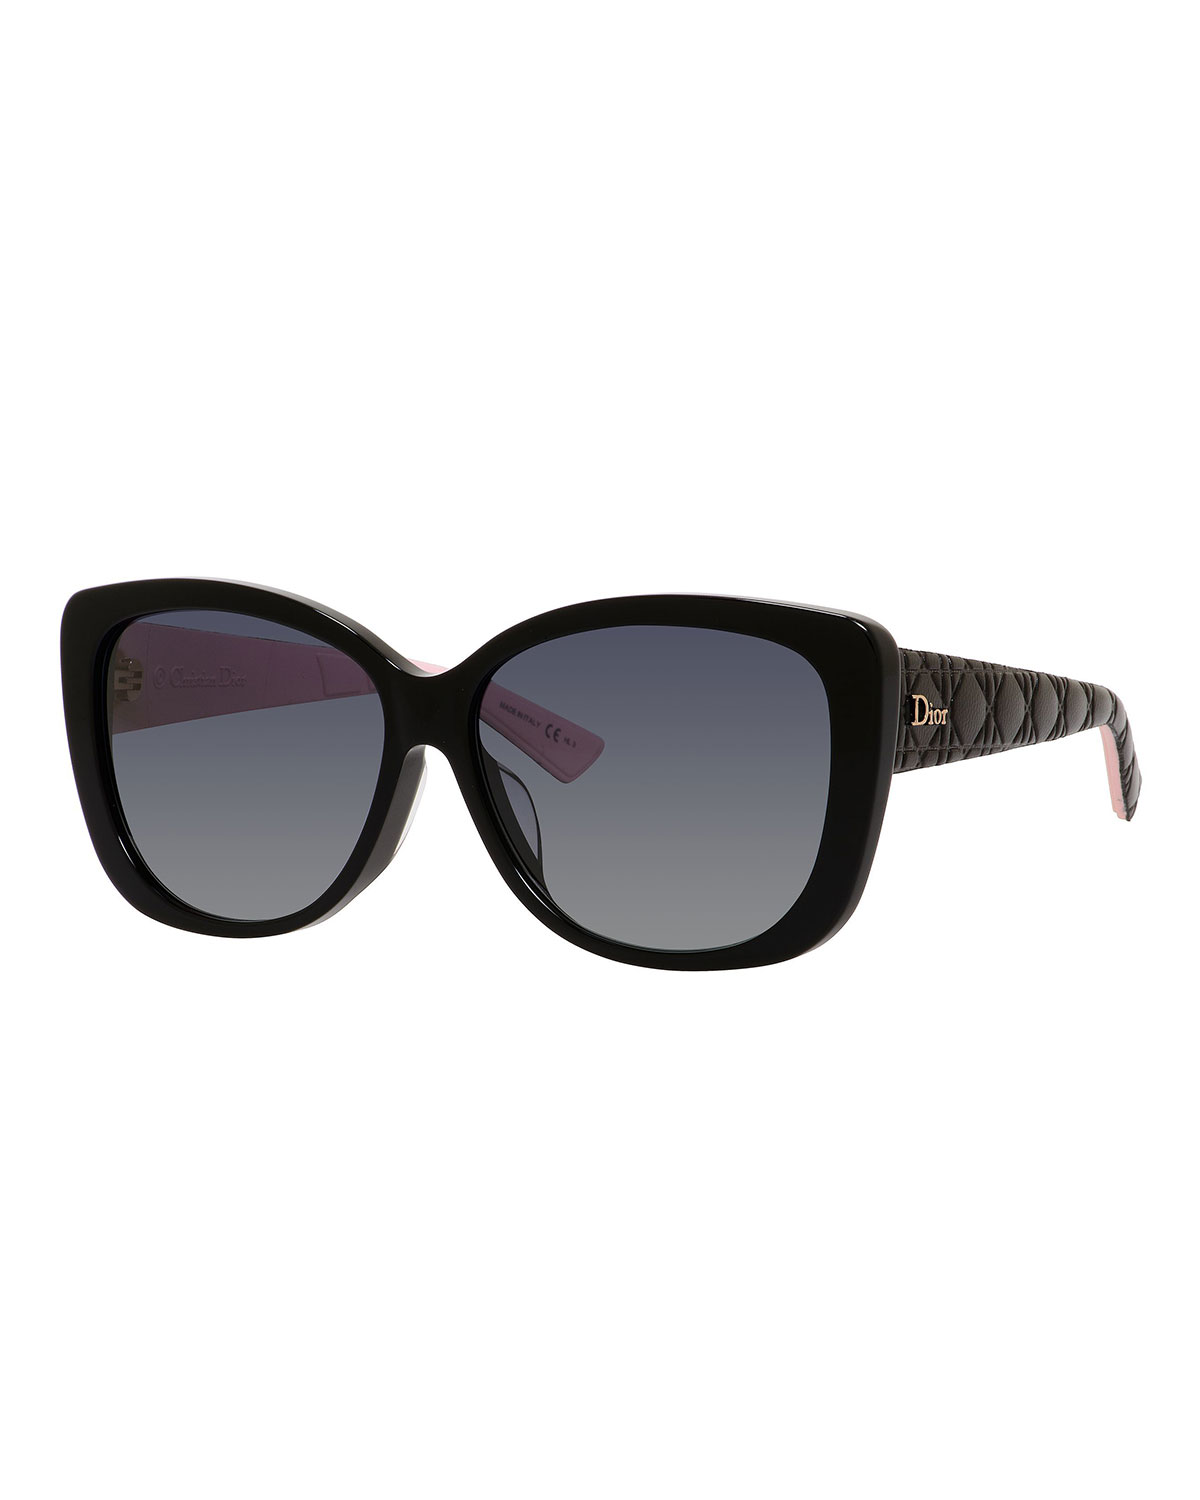 8403fe80dd52 Dior Lady2Rfs Square Quilted Acetate Sunglasses In Black  Pink ...